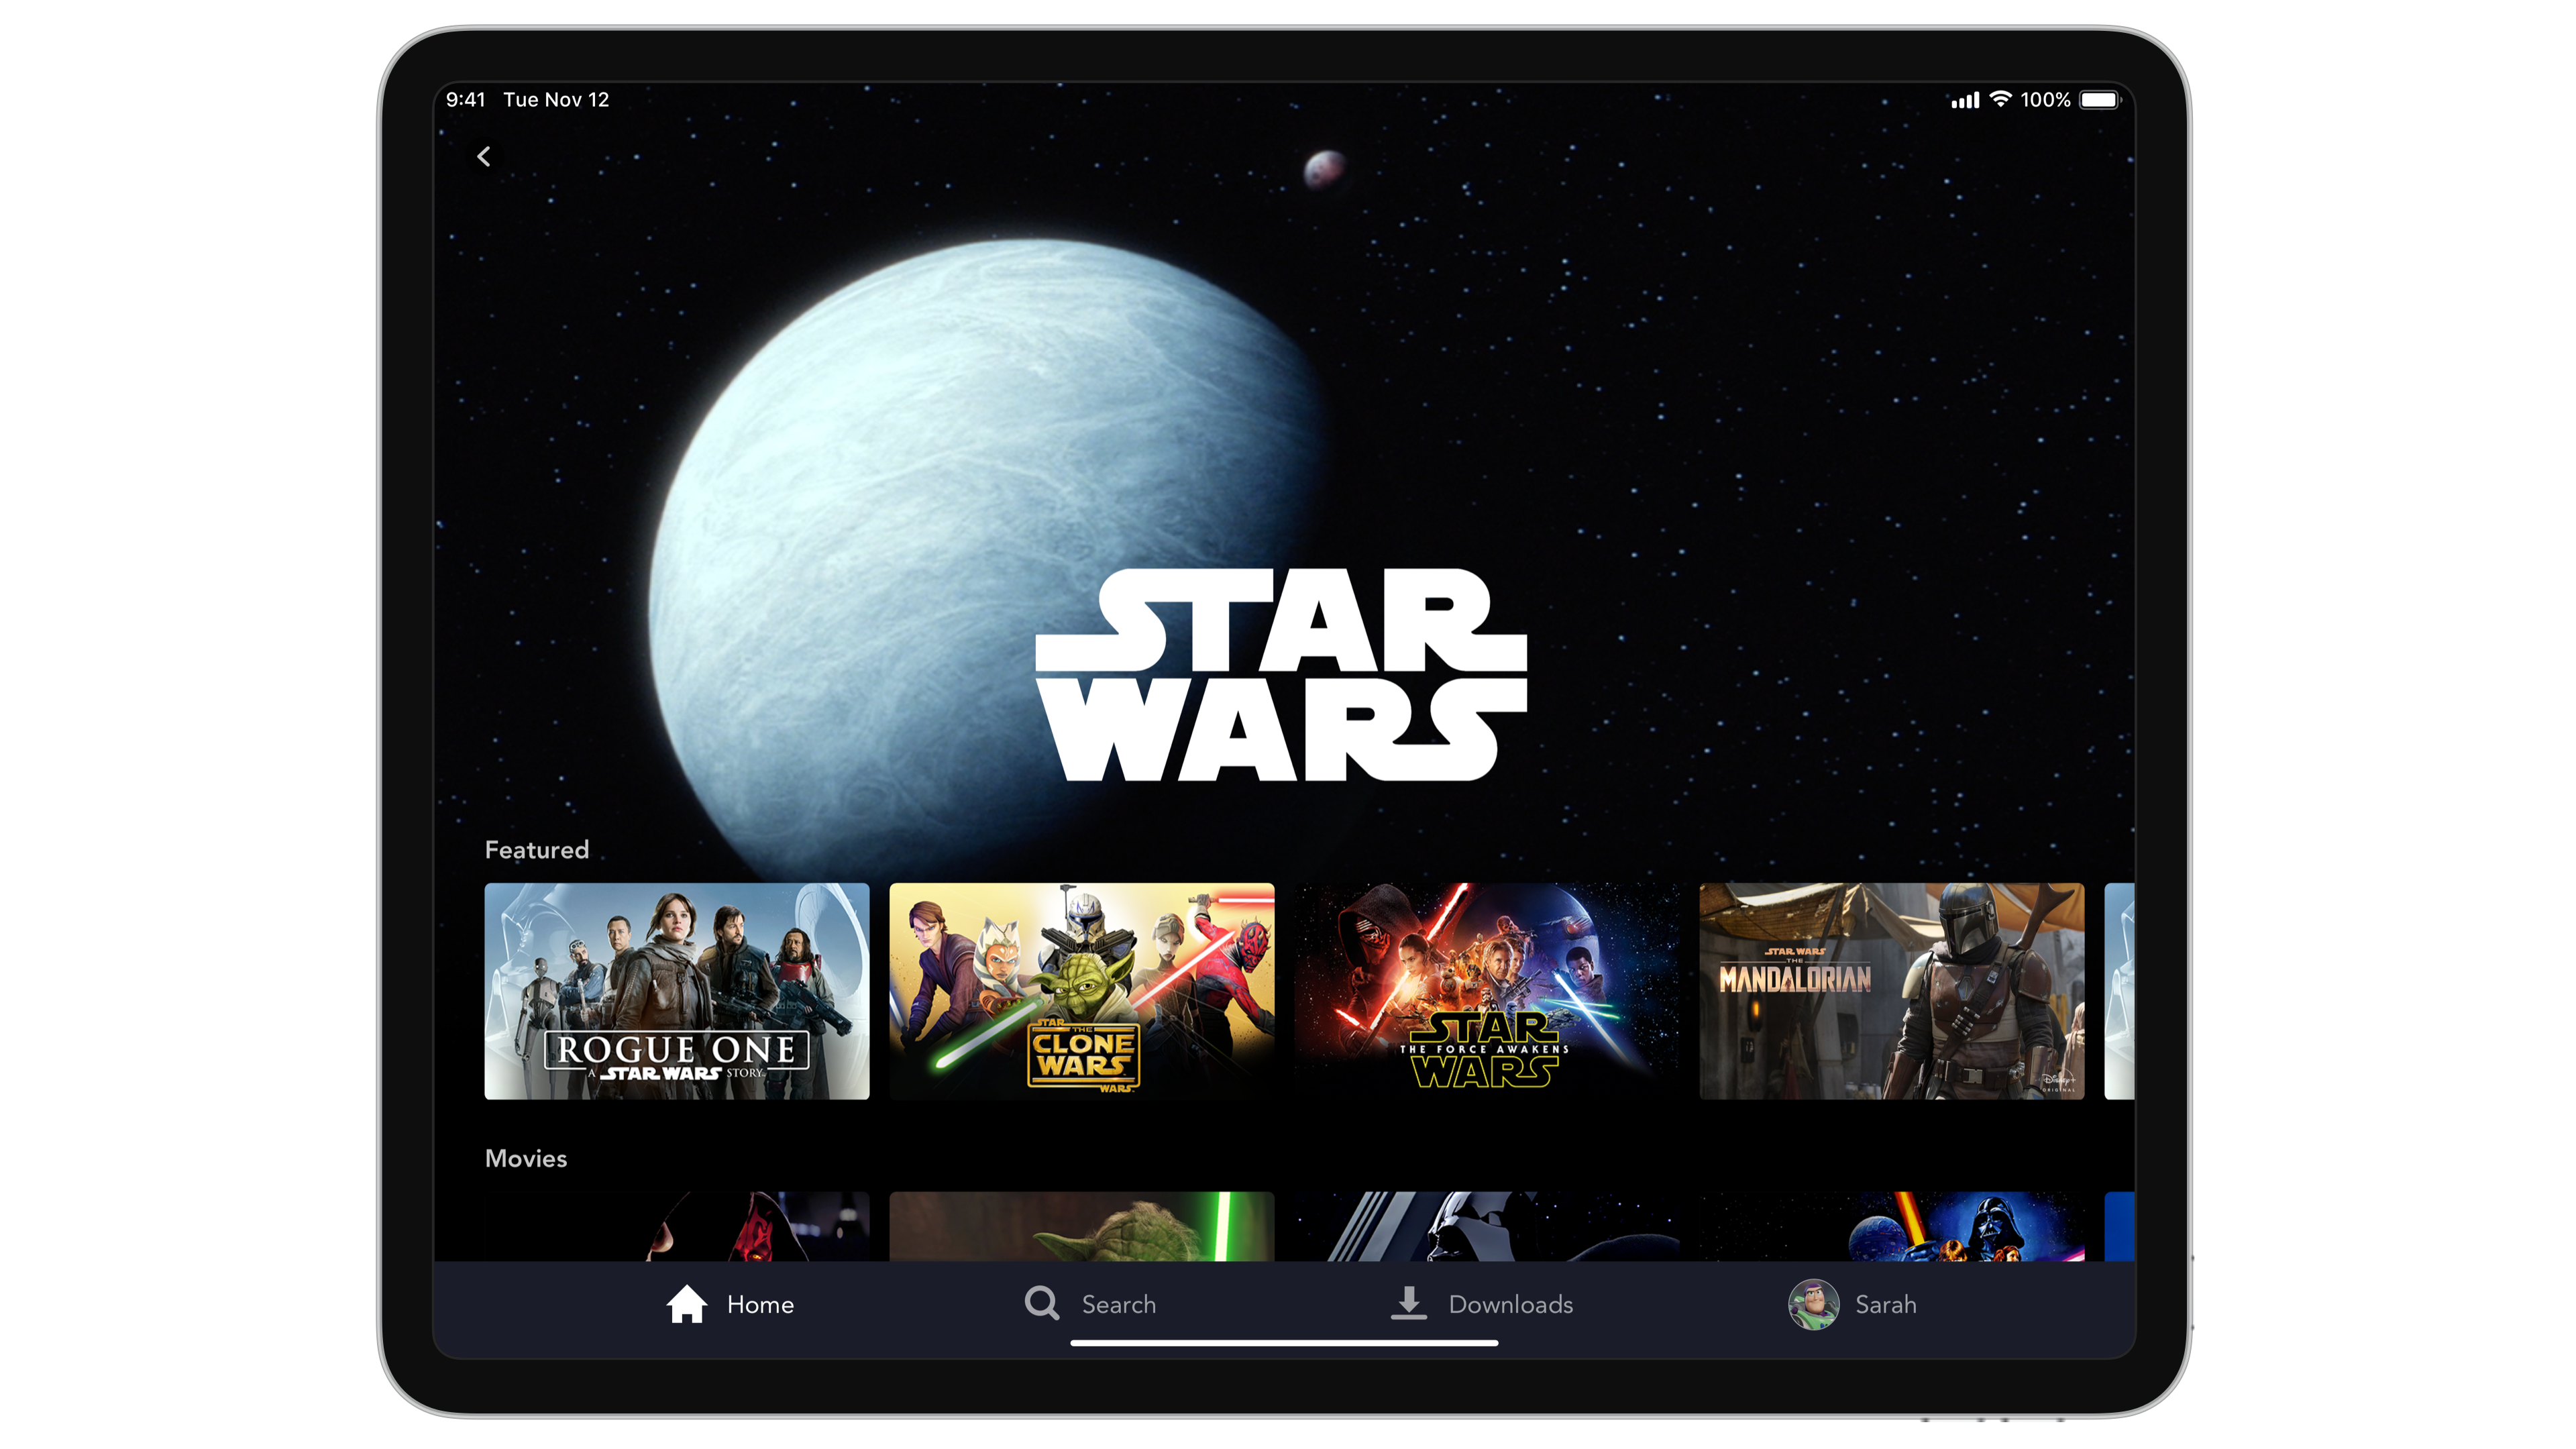 Disney+ Star Wars page on tablet